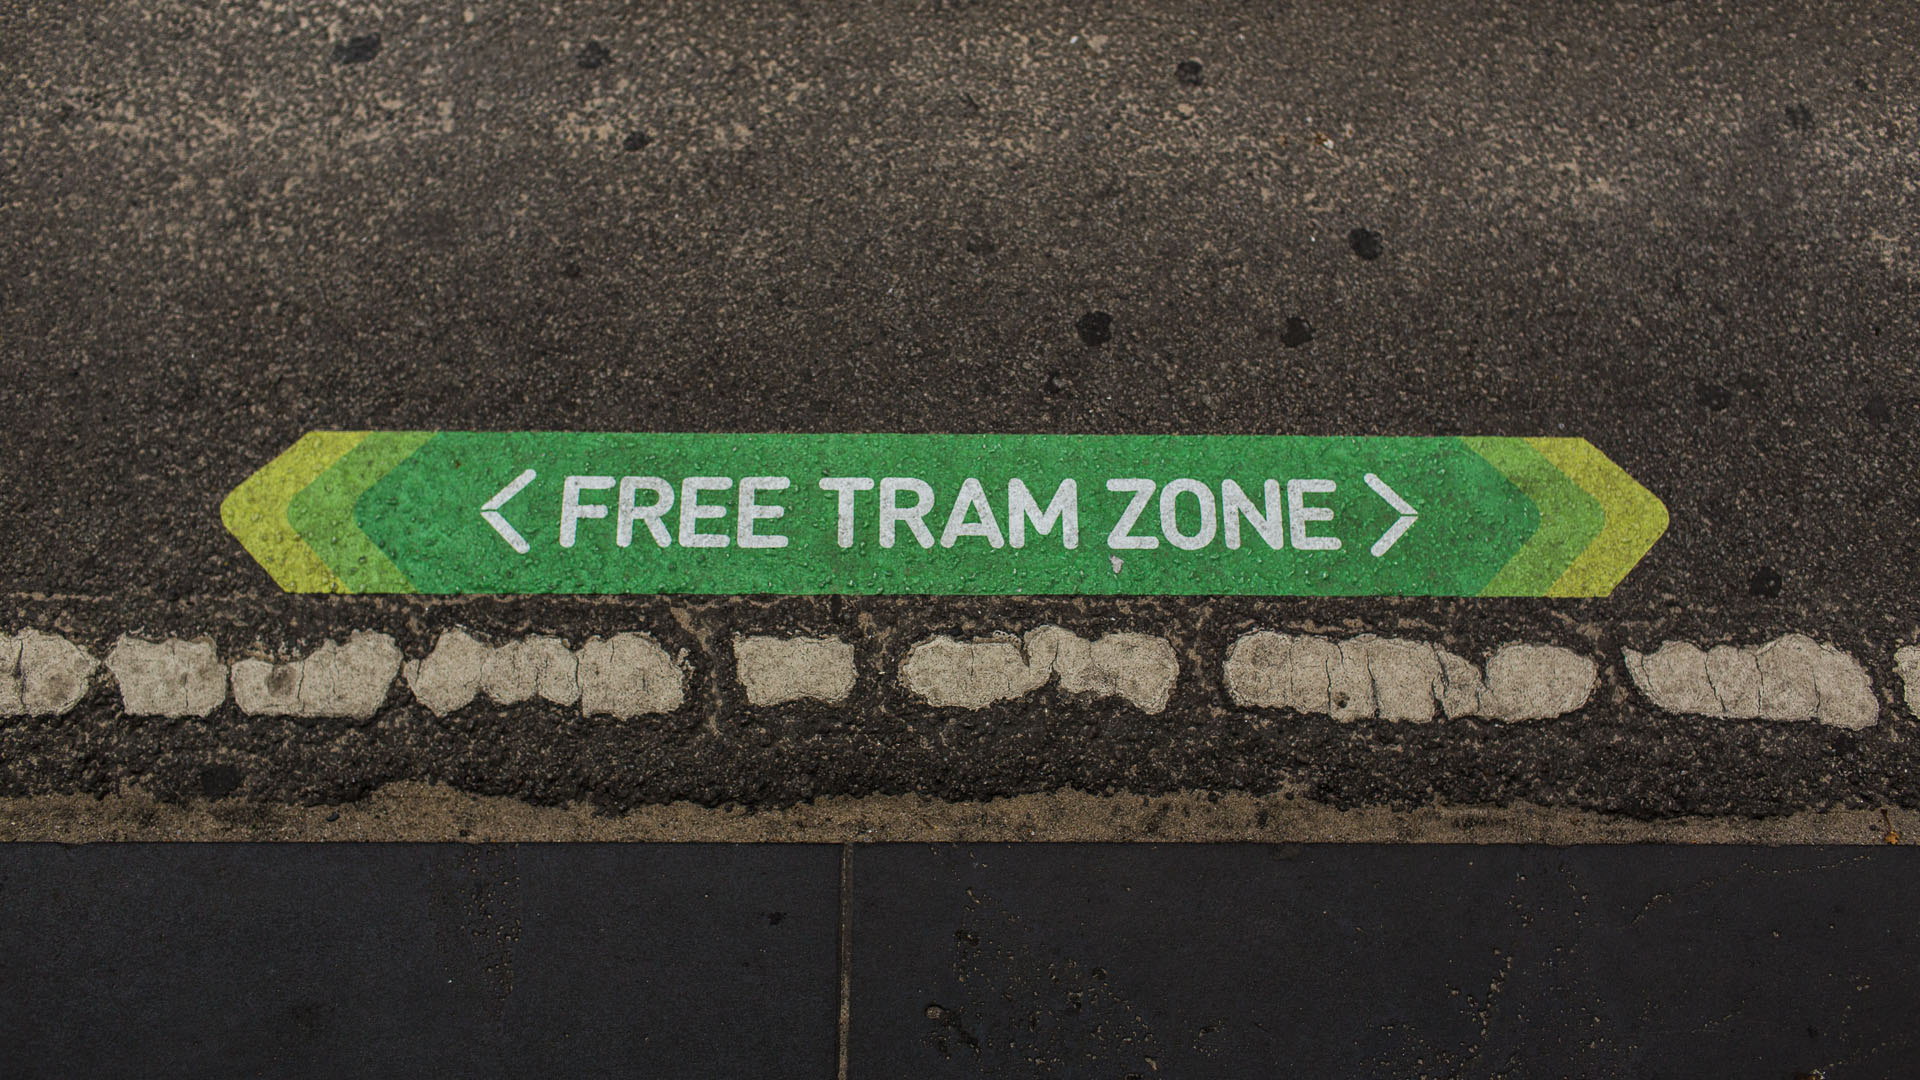 Free Tram Zone Delivering Unexpected Results for Yarra Trams